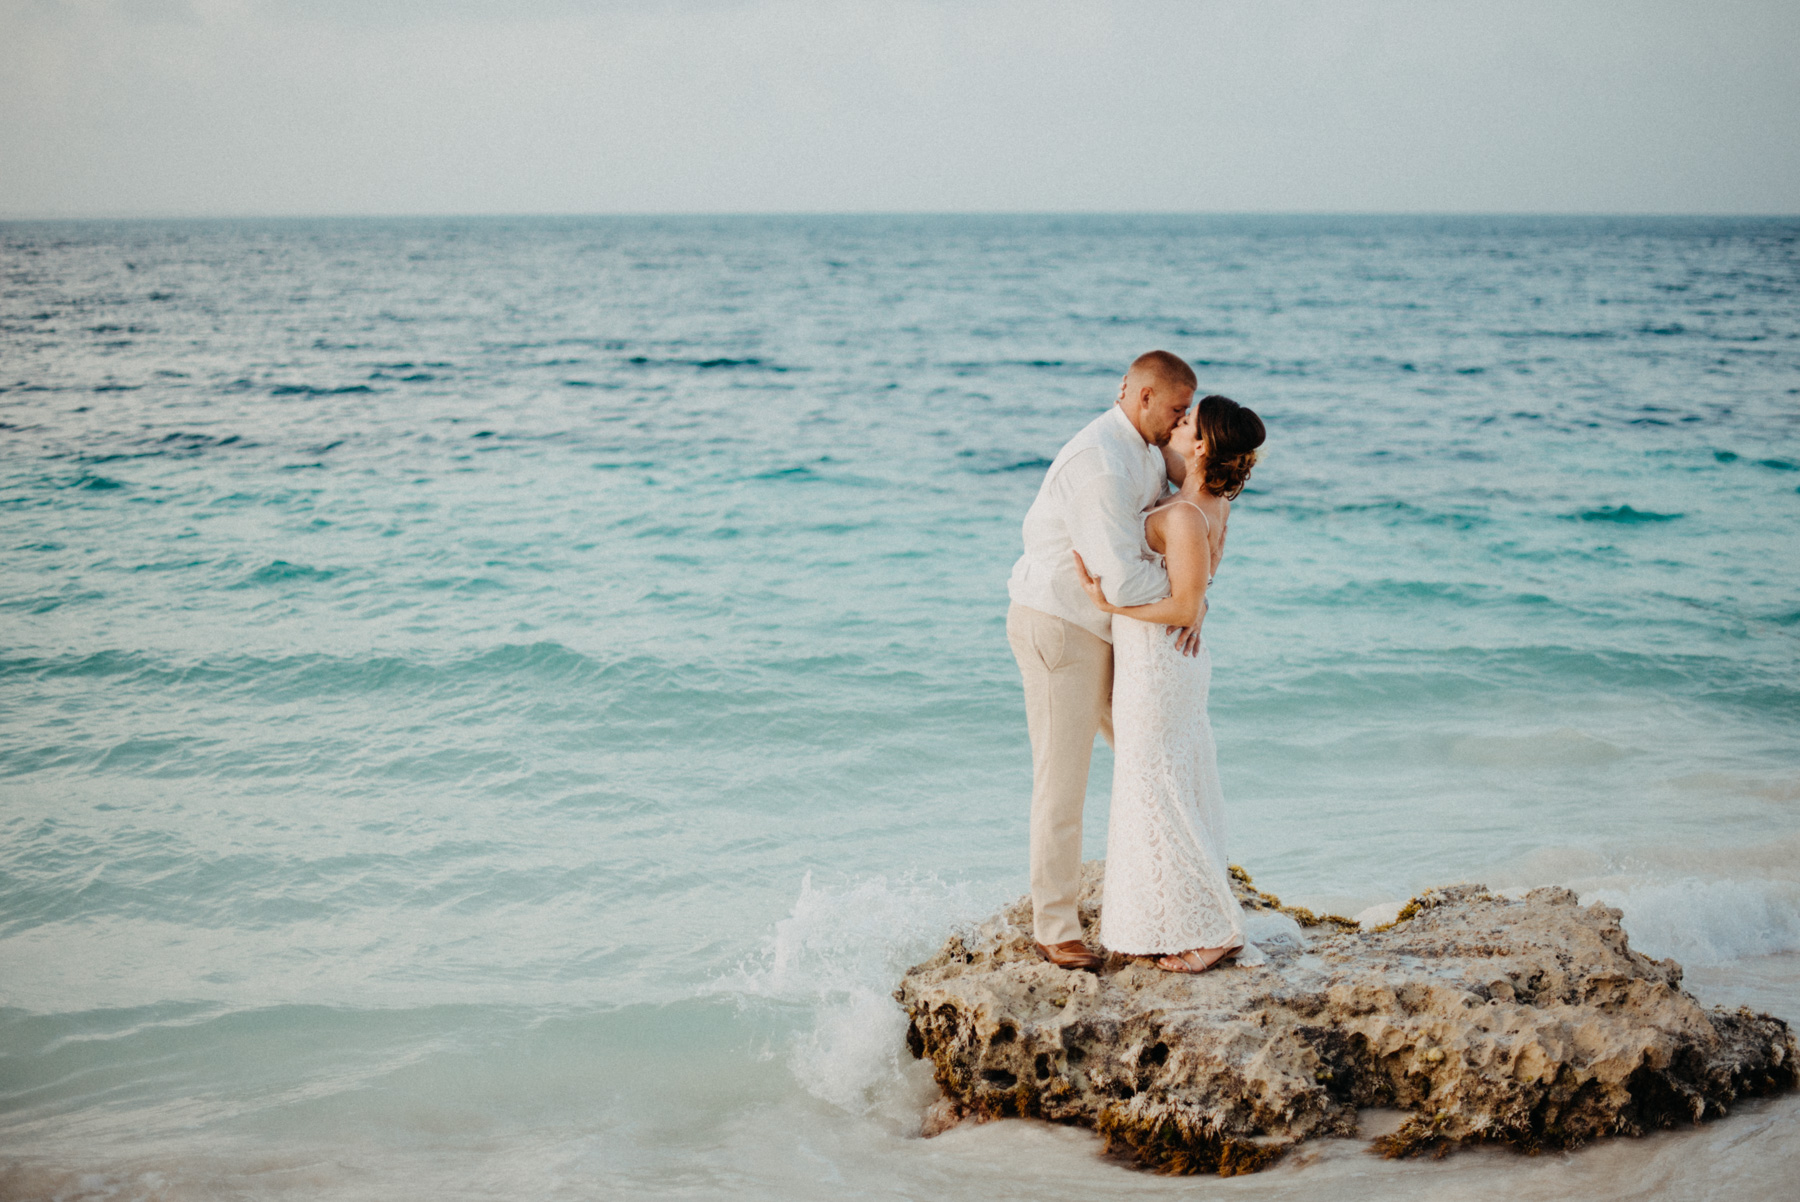 Tony & Julia's Cancun Destination Wedding Elopement could not have been more fun. I asked them if they would mind hopping on this rock, and Julia was all about it! She was they more fun, laid back, boho beach bride. I love photographing beach elopements, and this one in Mexico was a blast!